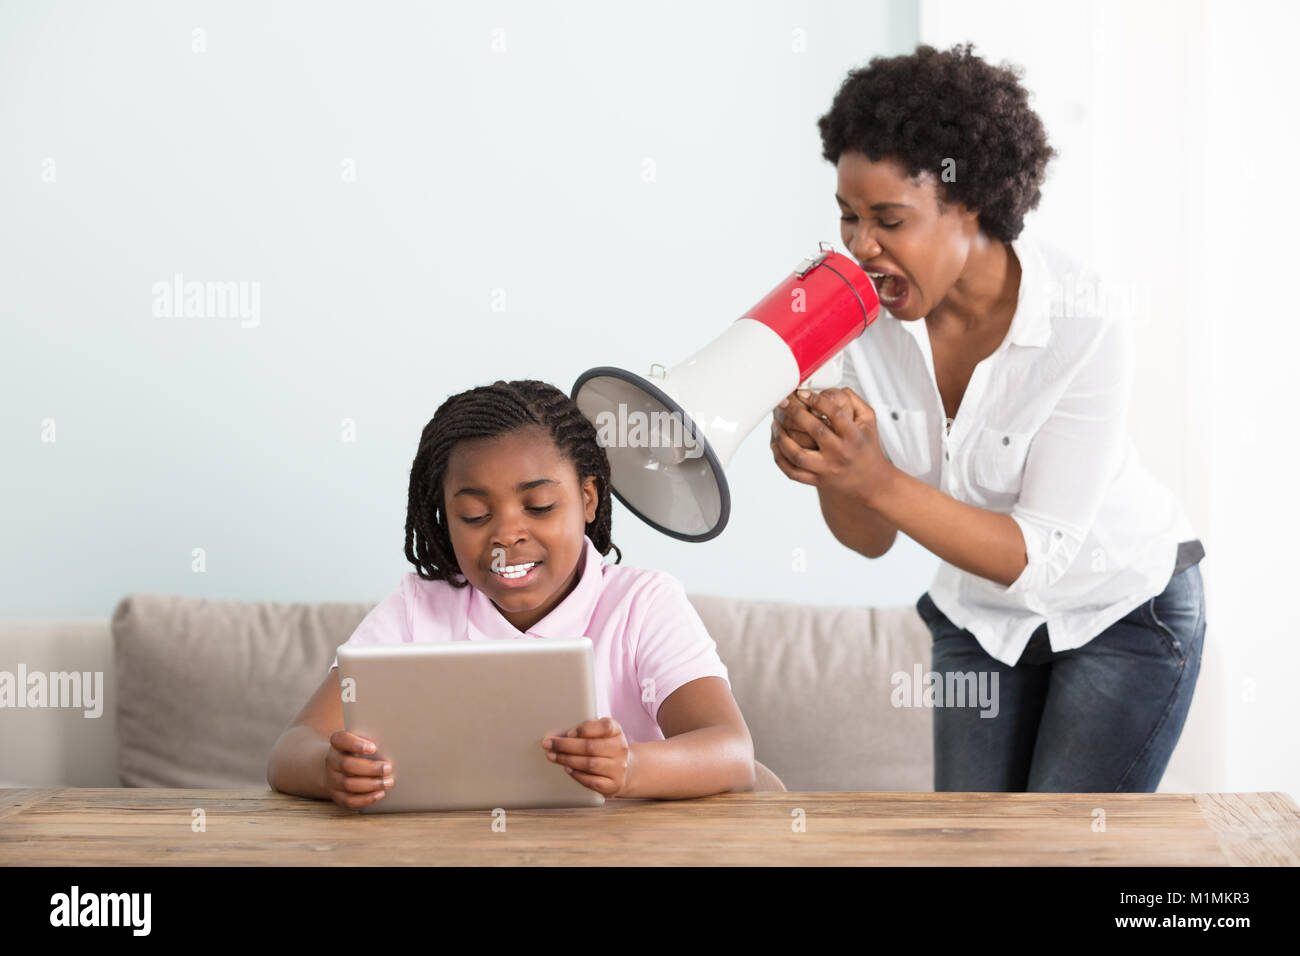 Mother Shouting At Her Daughter Holding Digital Tablet In A Megaphone At Home - Stock Image